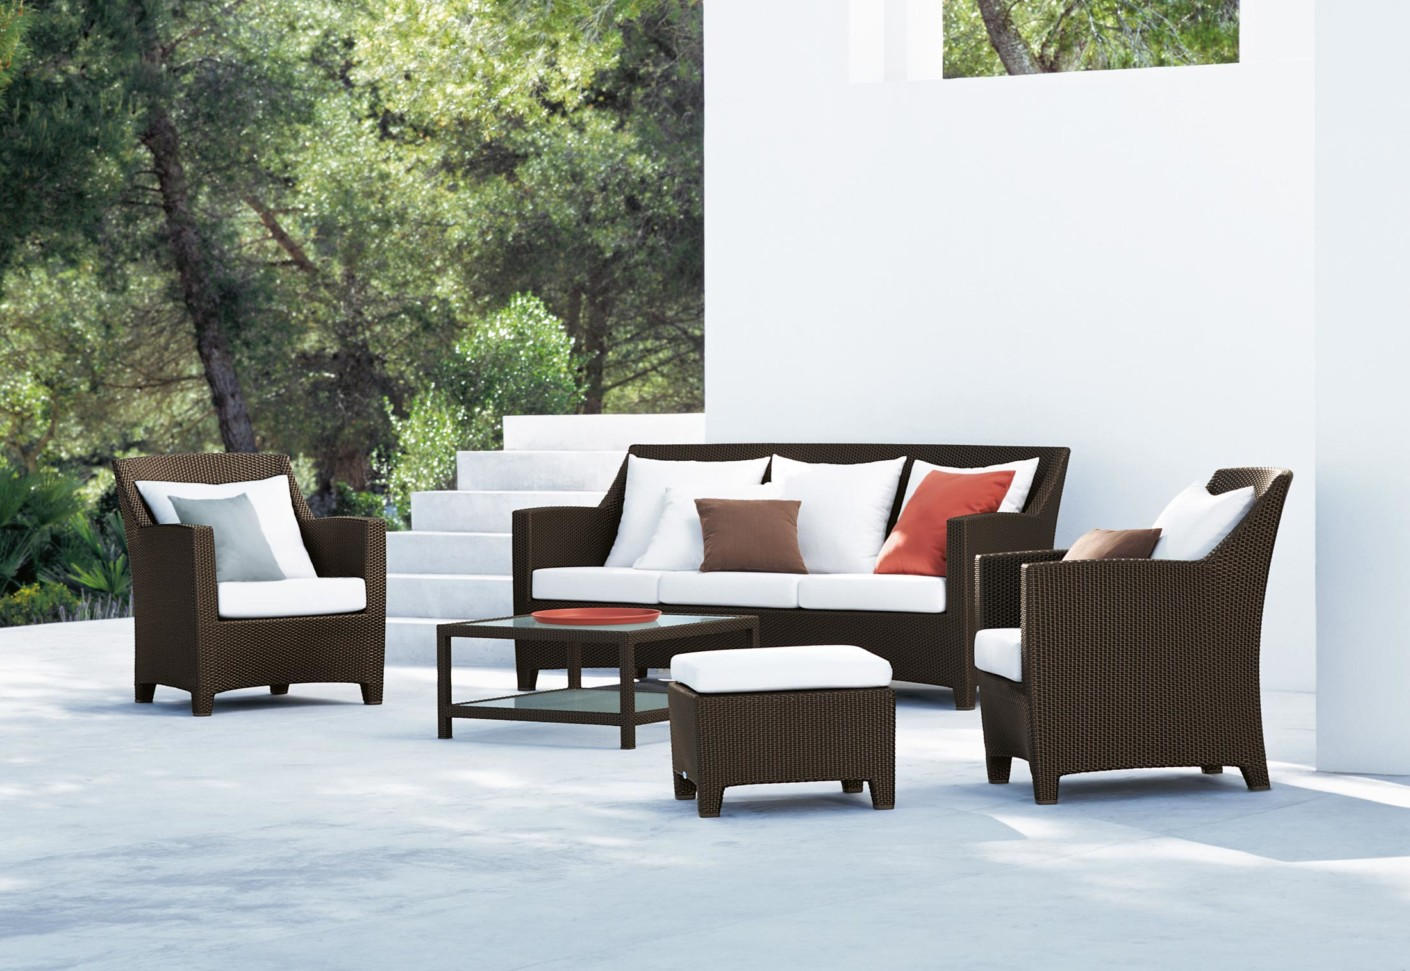 Barcelona lounge chair by dedon stylepark for Dedon outdoor furniture